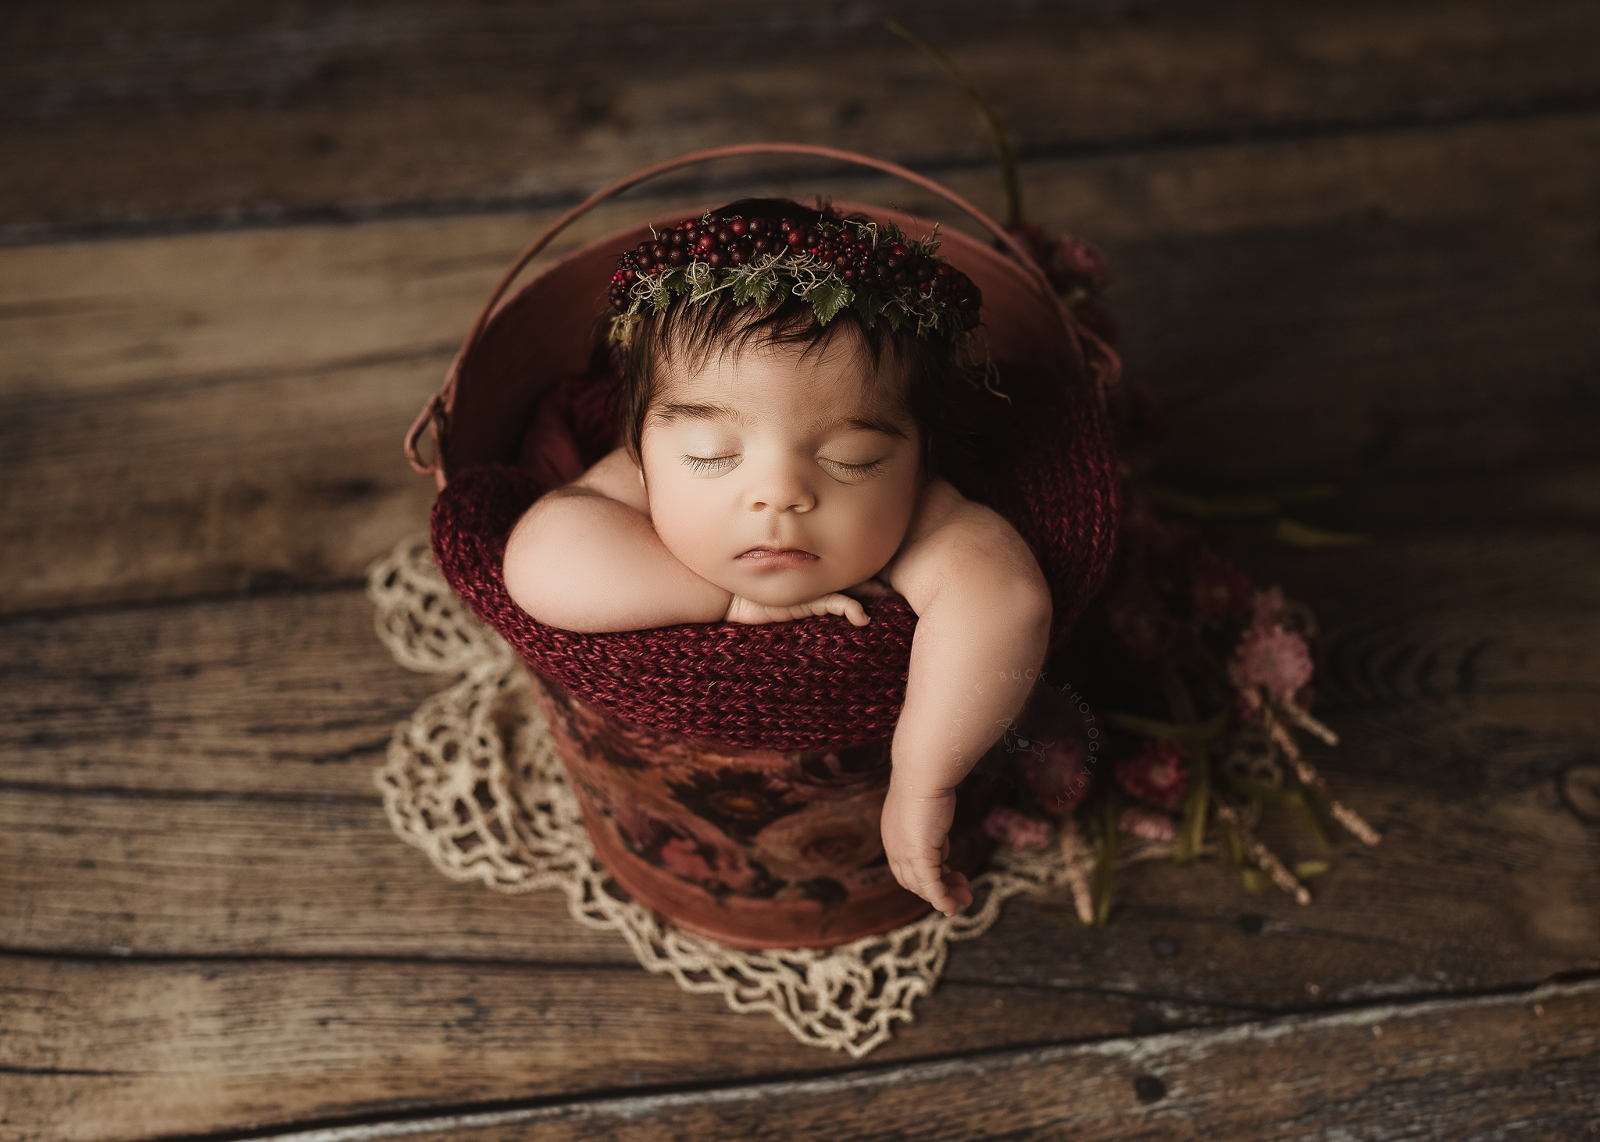 Best Newborn Photographer in Connecticut USA, Fairfield County CT, Litchfield County CT, Westchester County NY